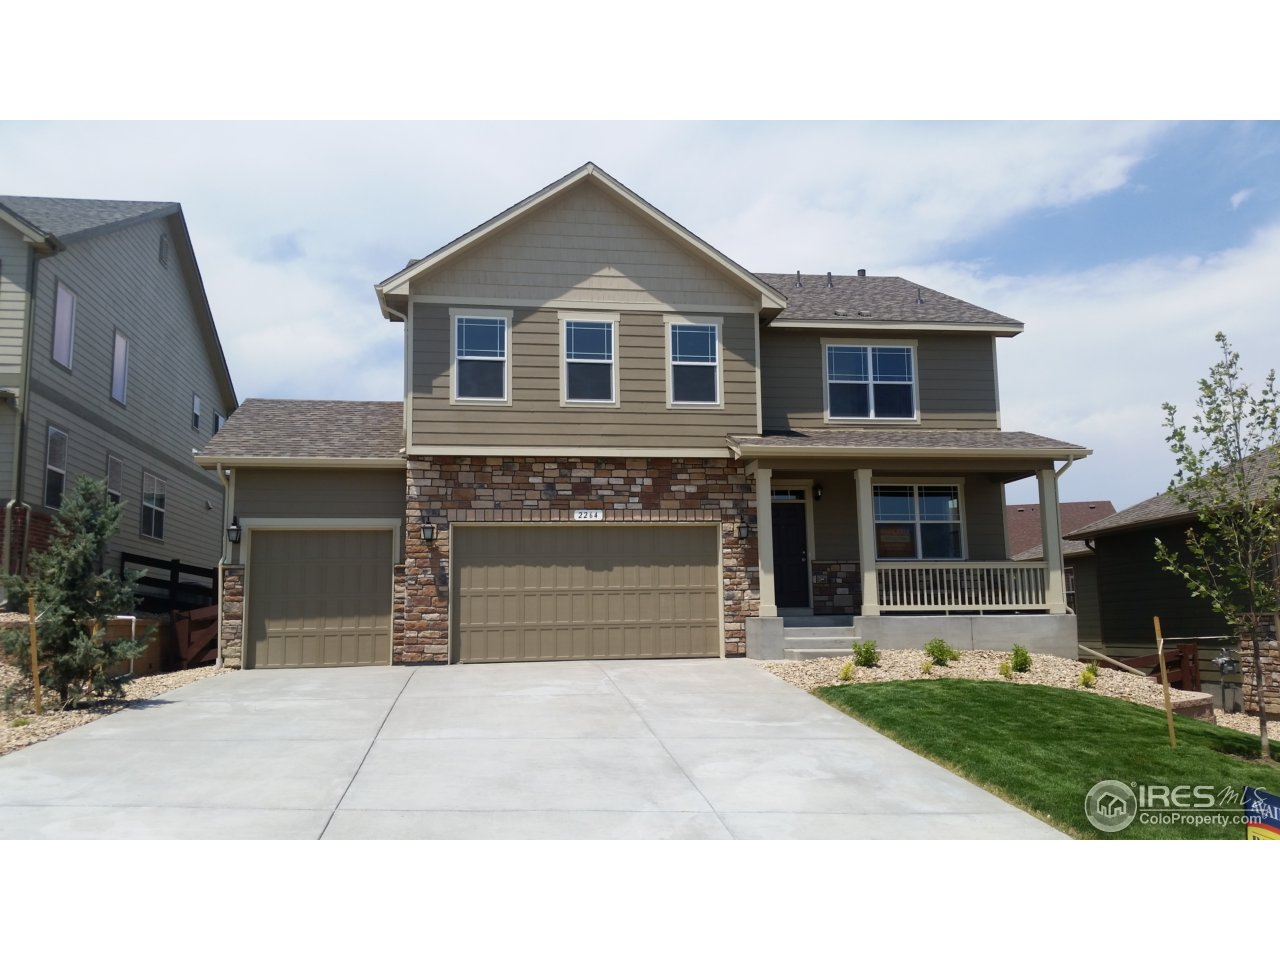 2264 Stonefish Dr, Windsor CO 80550